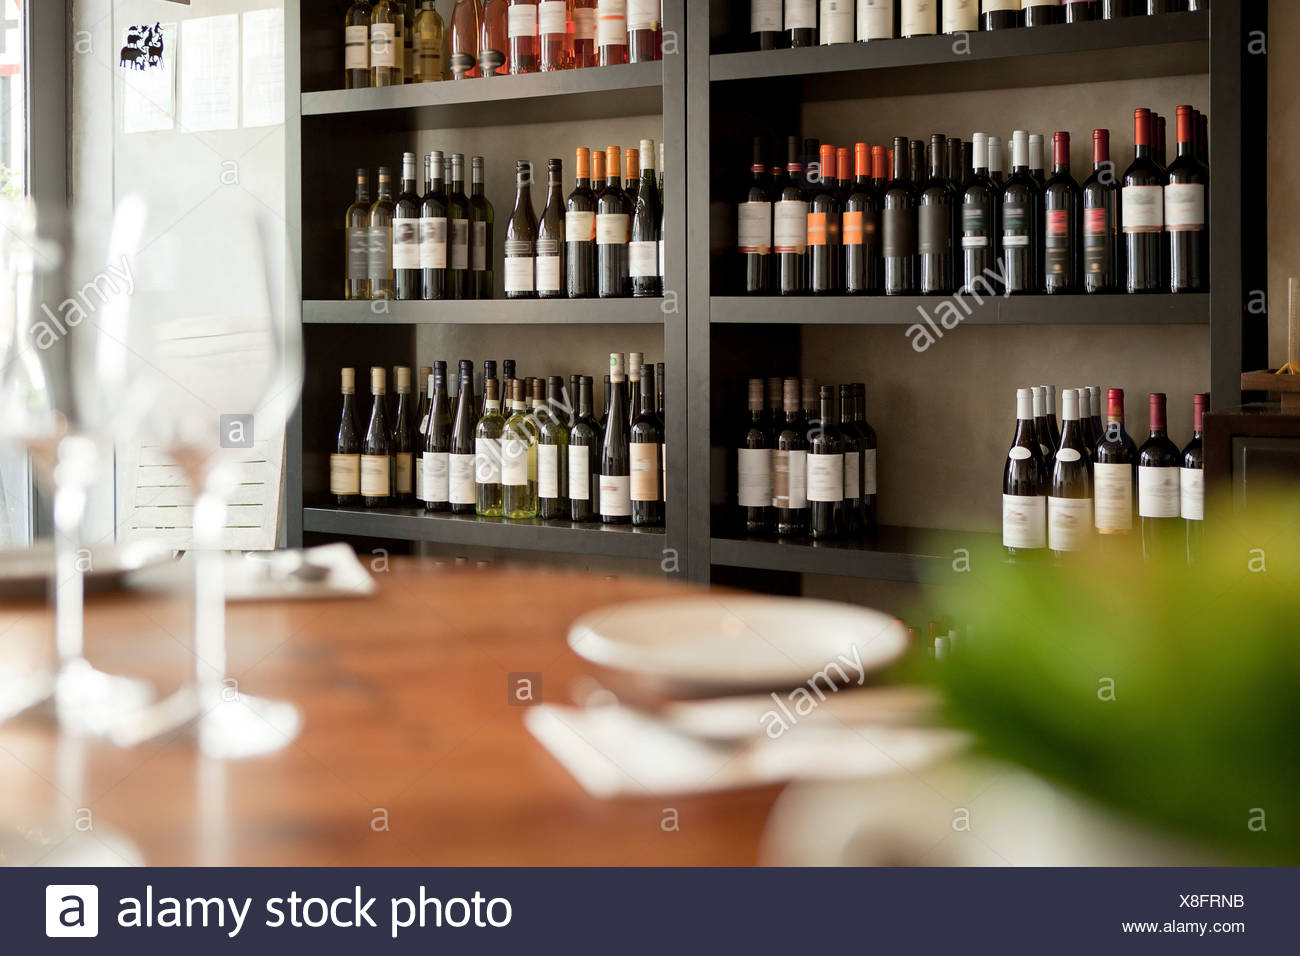 Wine Glasses On Shelf Restaurant High Resolution Stock Photography And Images Alamy